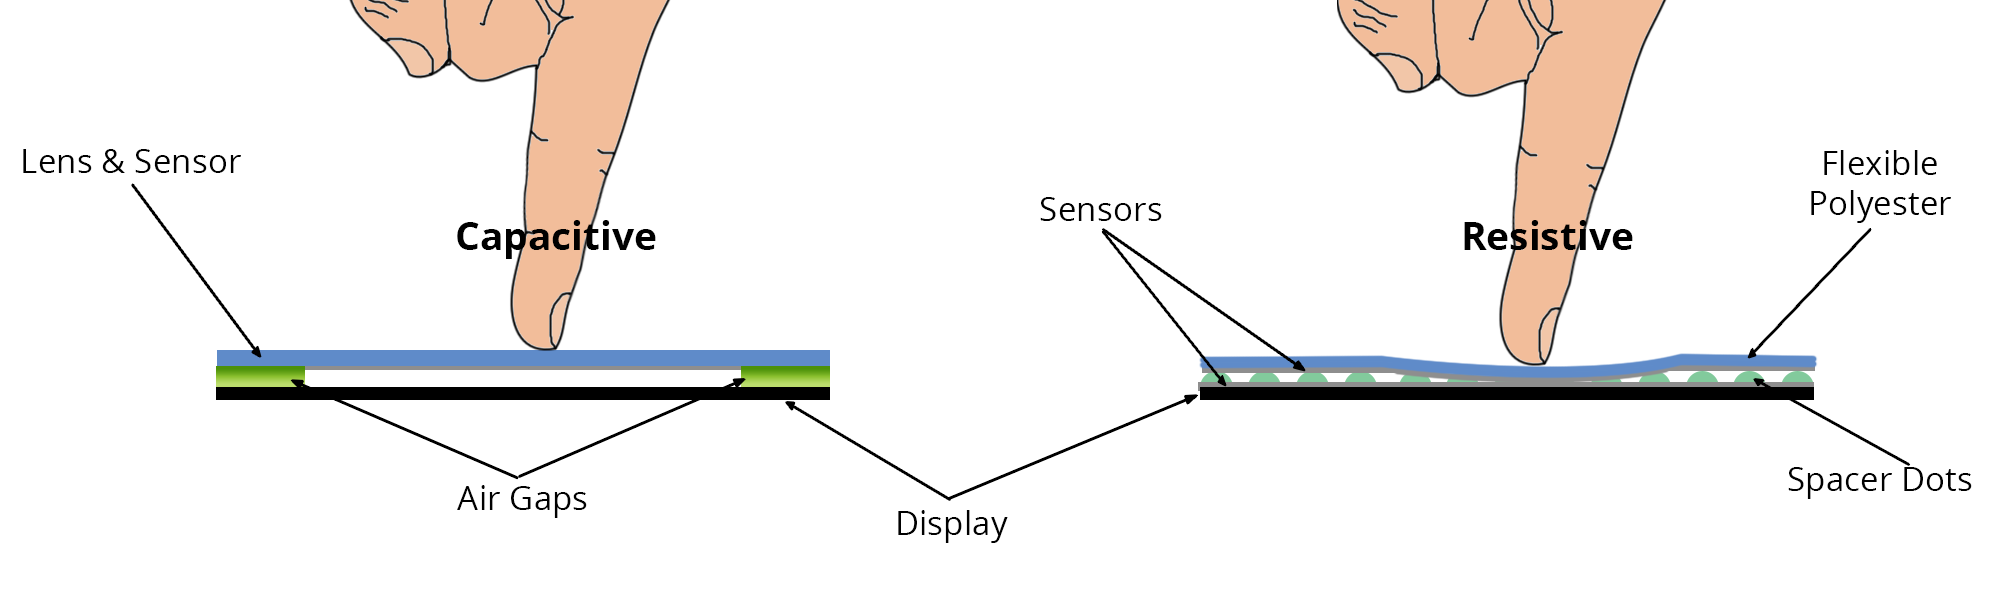 Capacitive vs Resisitive.png